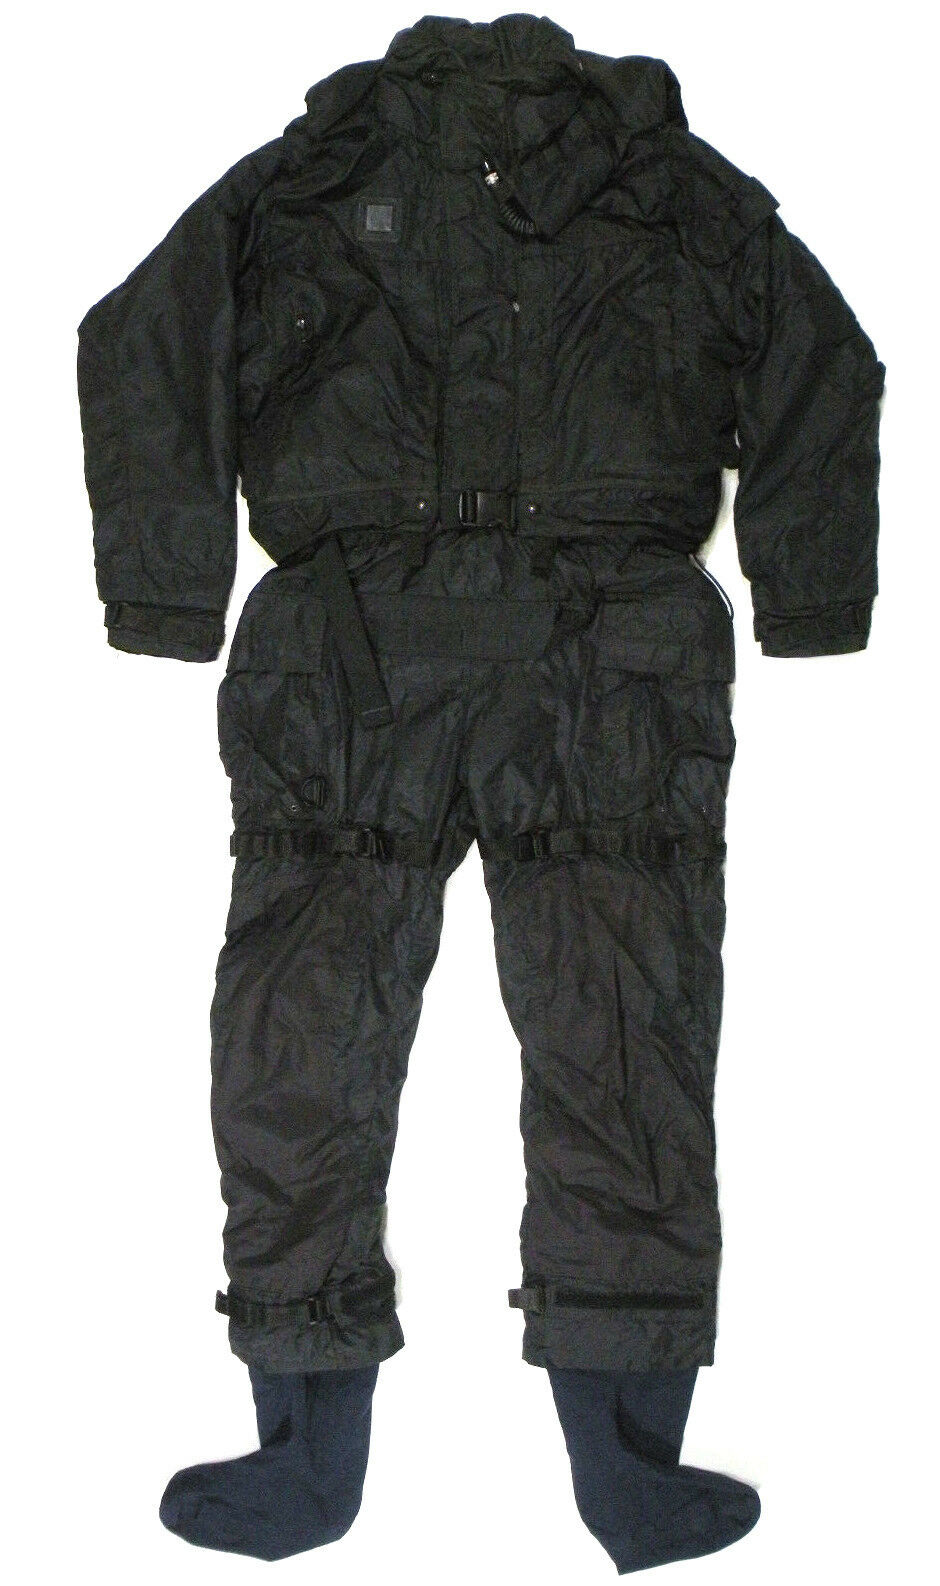 Mustang  MSD900 3-Piece Tactical Immersion Work Suit Size Large US Navy SEAL NSW  welcome to choose